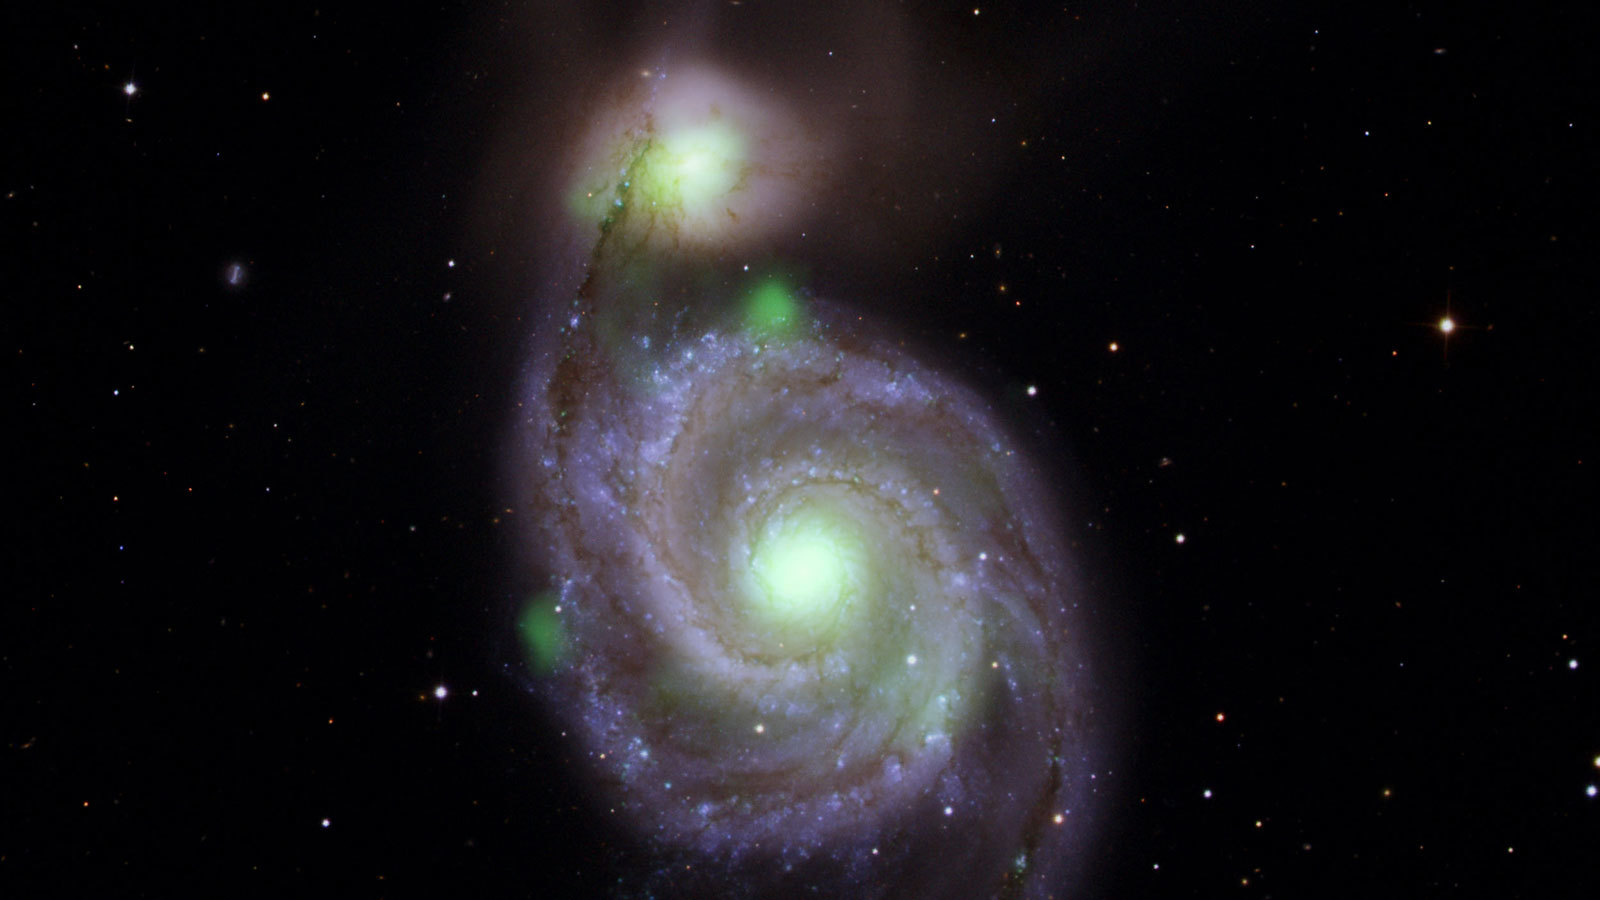 Merging galaxies seen by NASA's NuSTAR mission. Whirlpool galaxy and M51b.